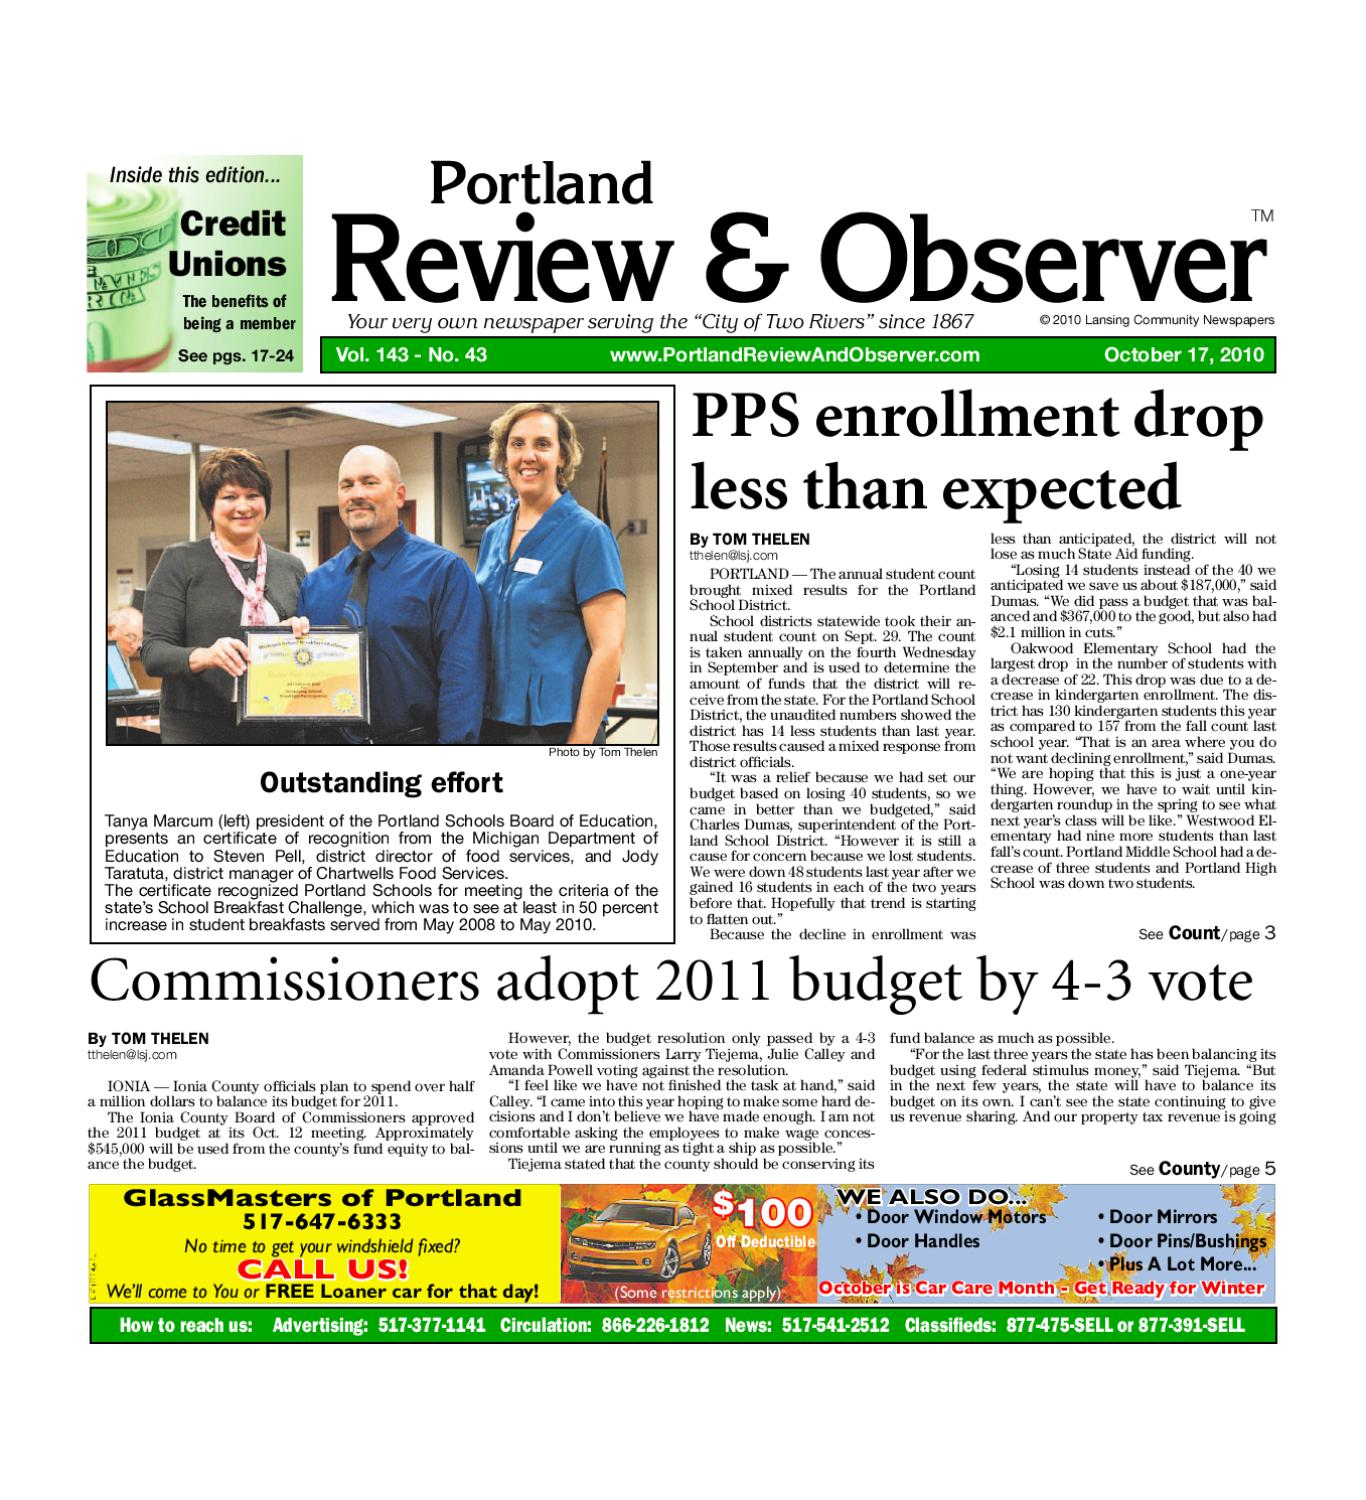 Http db lsj com lsj issuu upload_to_issuu ro_10_17_10 by lansing state journal issuu